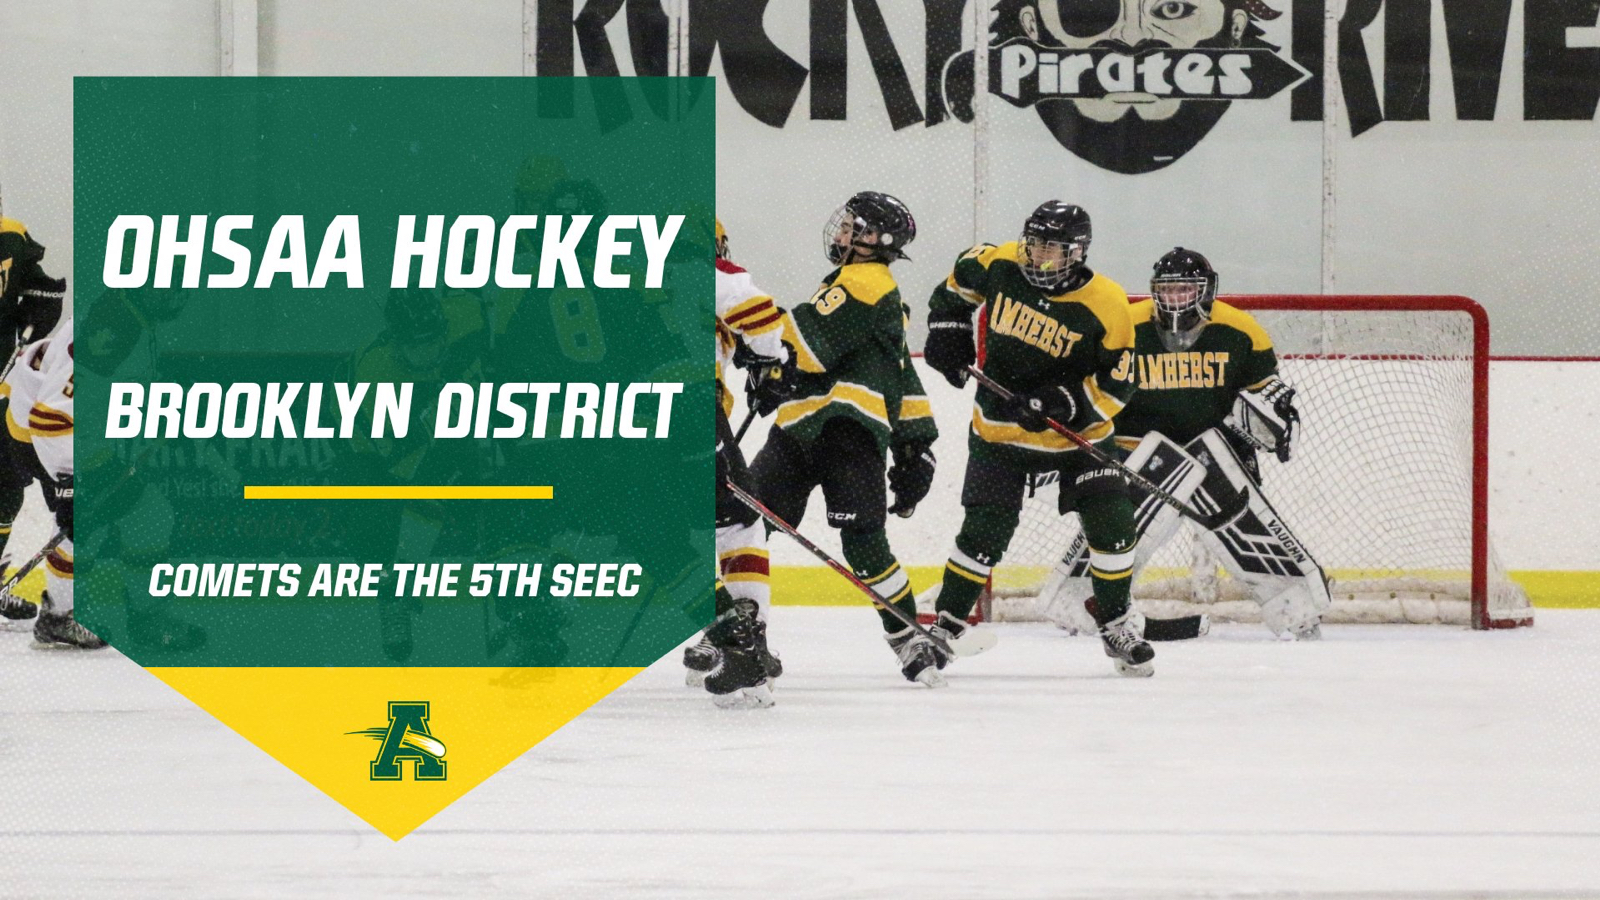 OHSAA Hockey: Brooklyn District Bracket is Announced